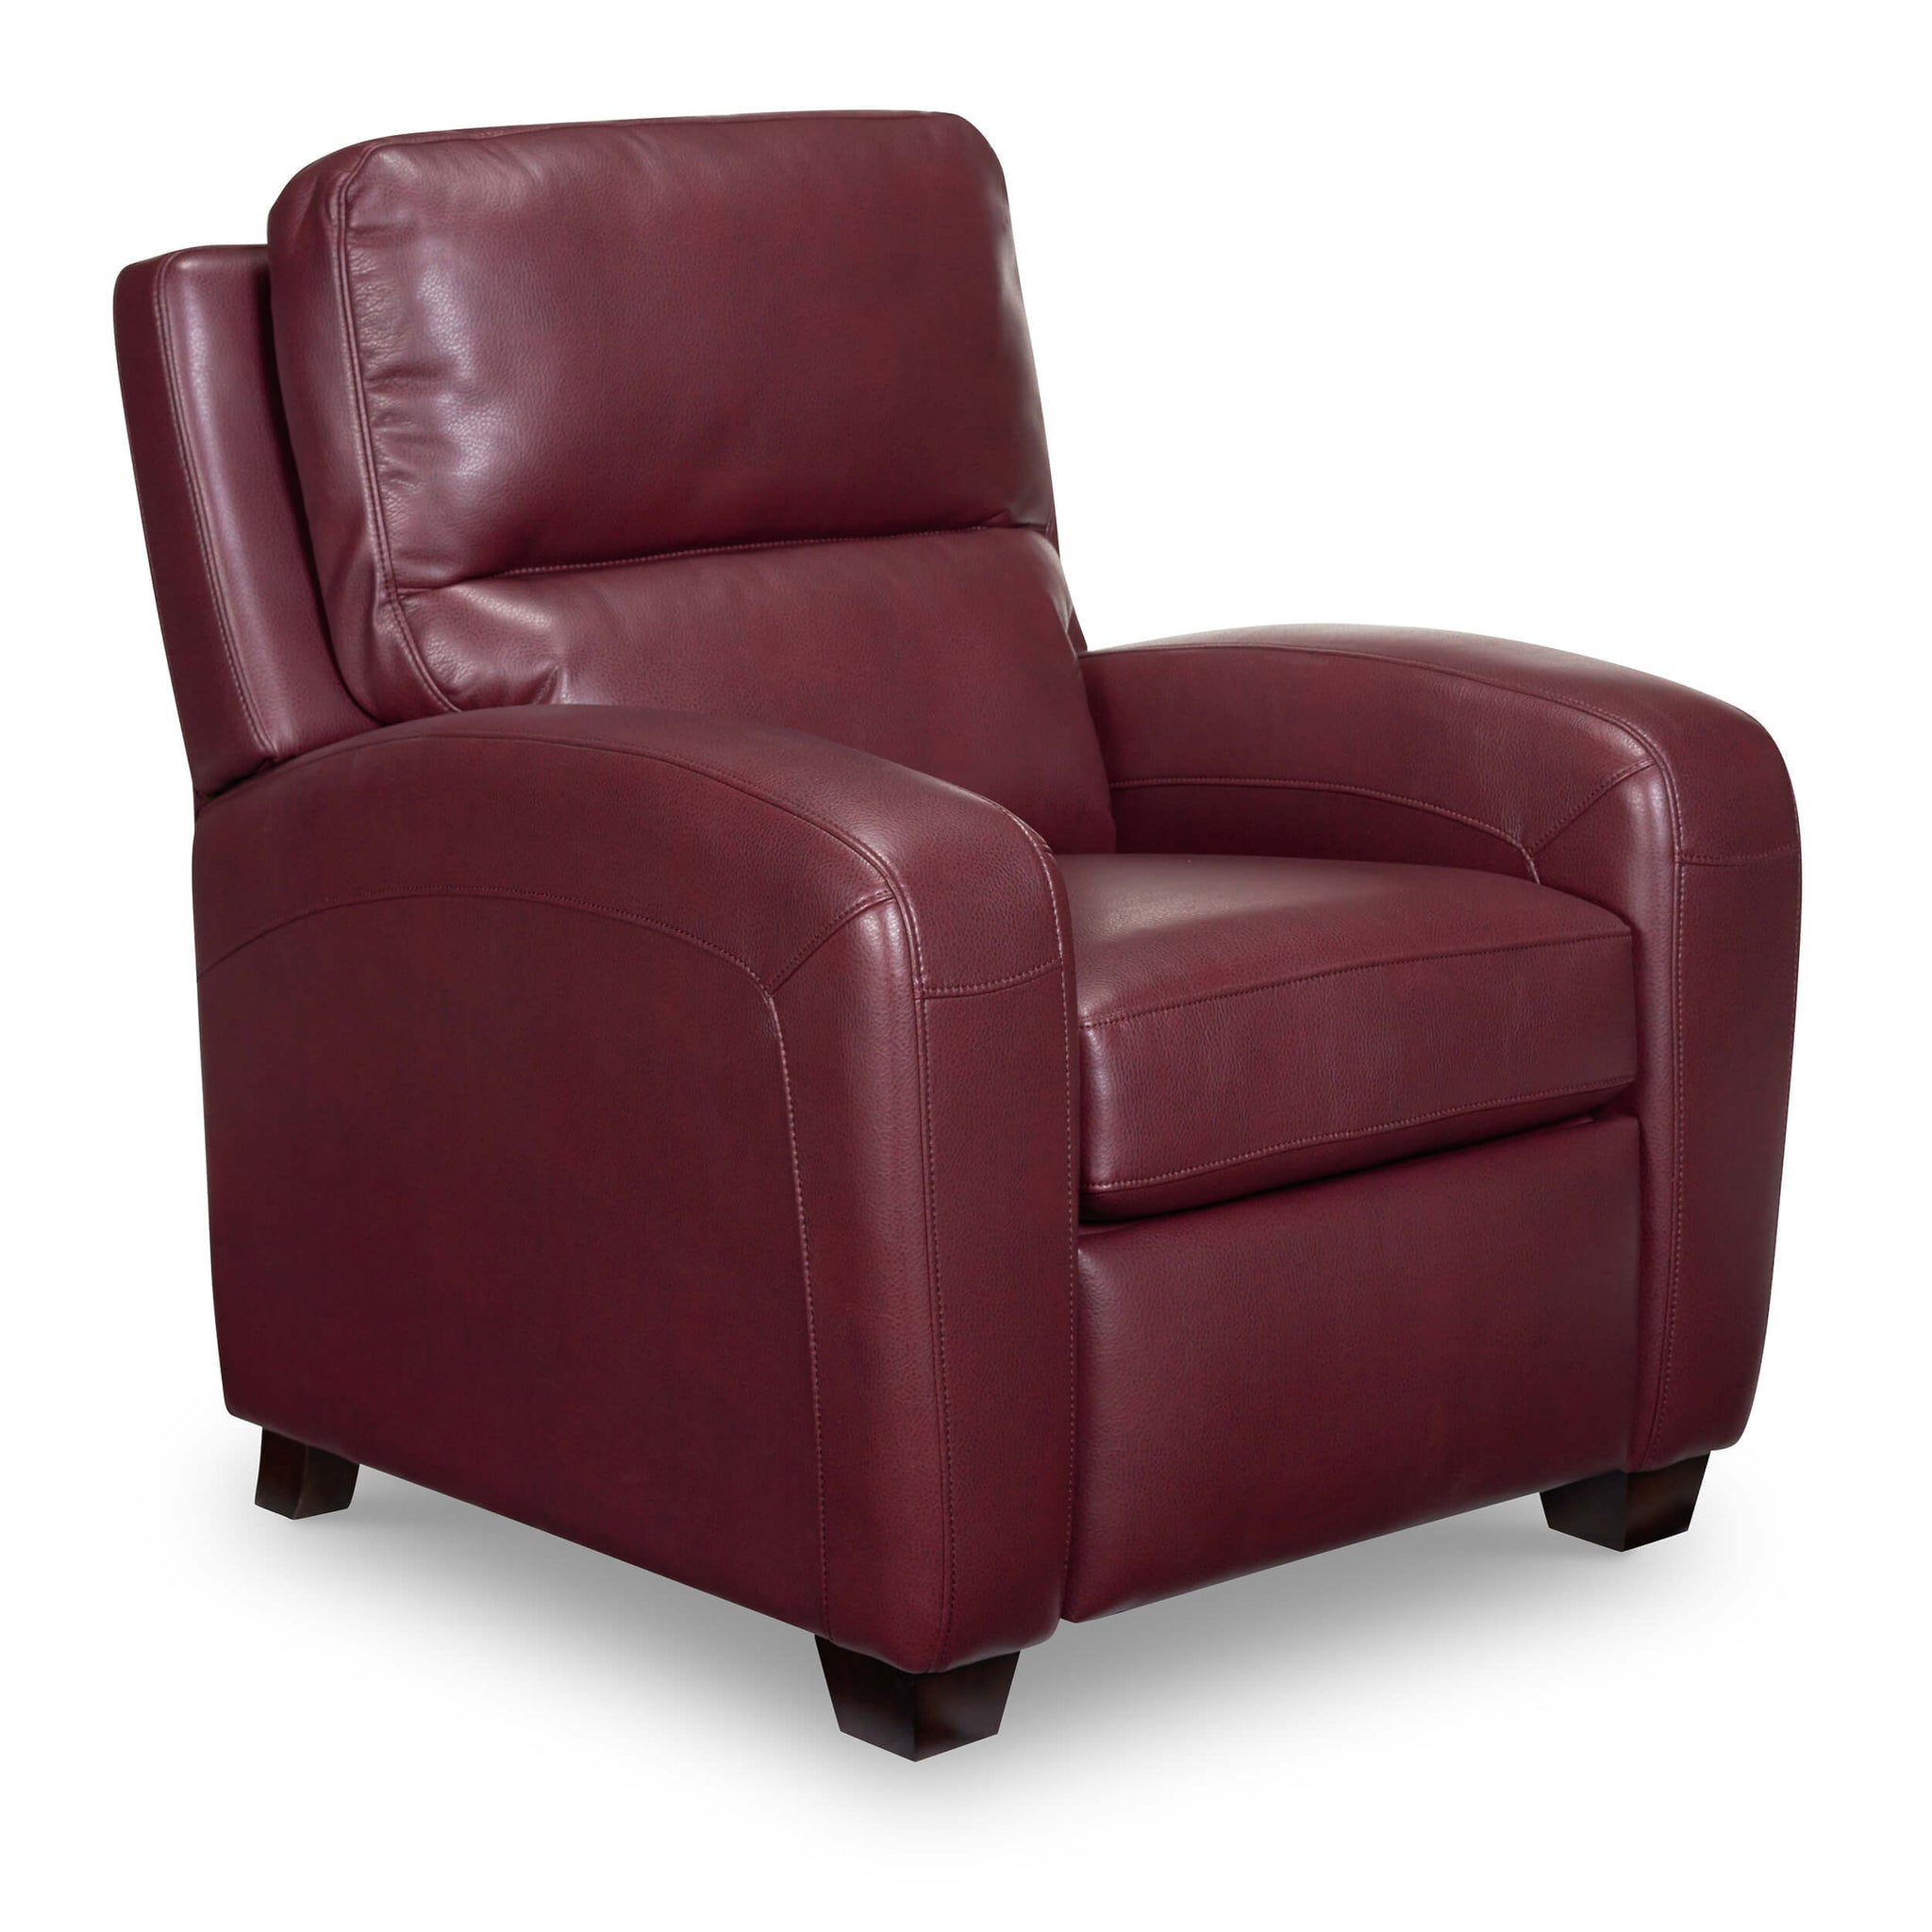 Recliners Opulence Home